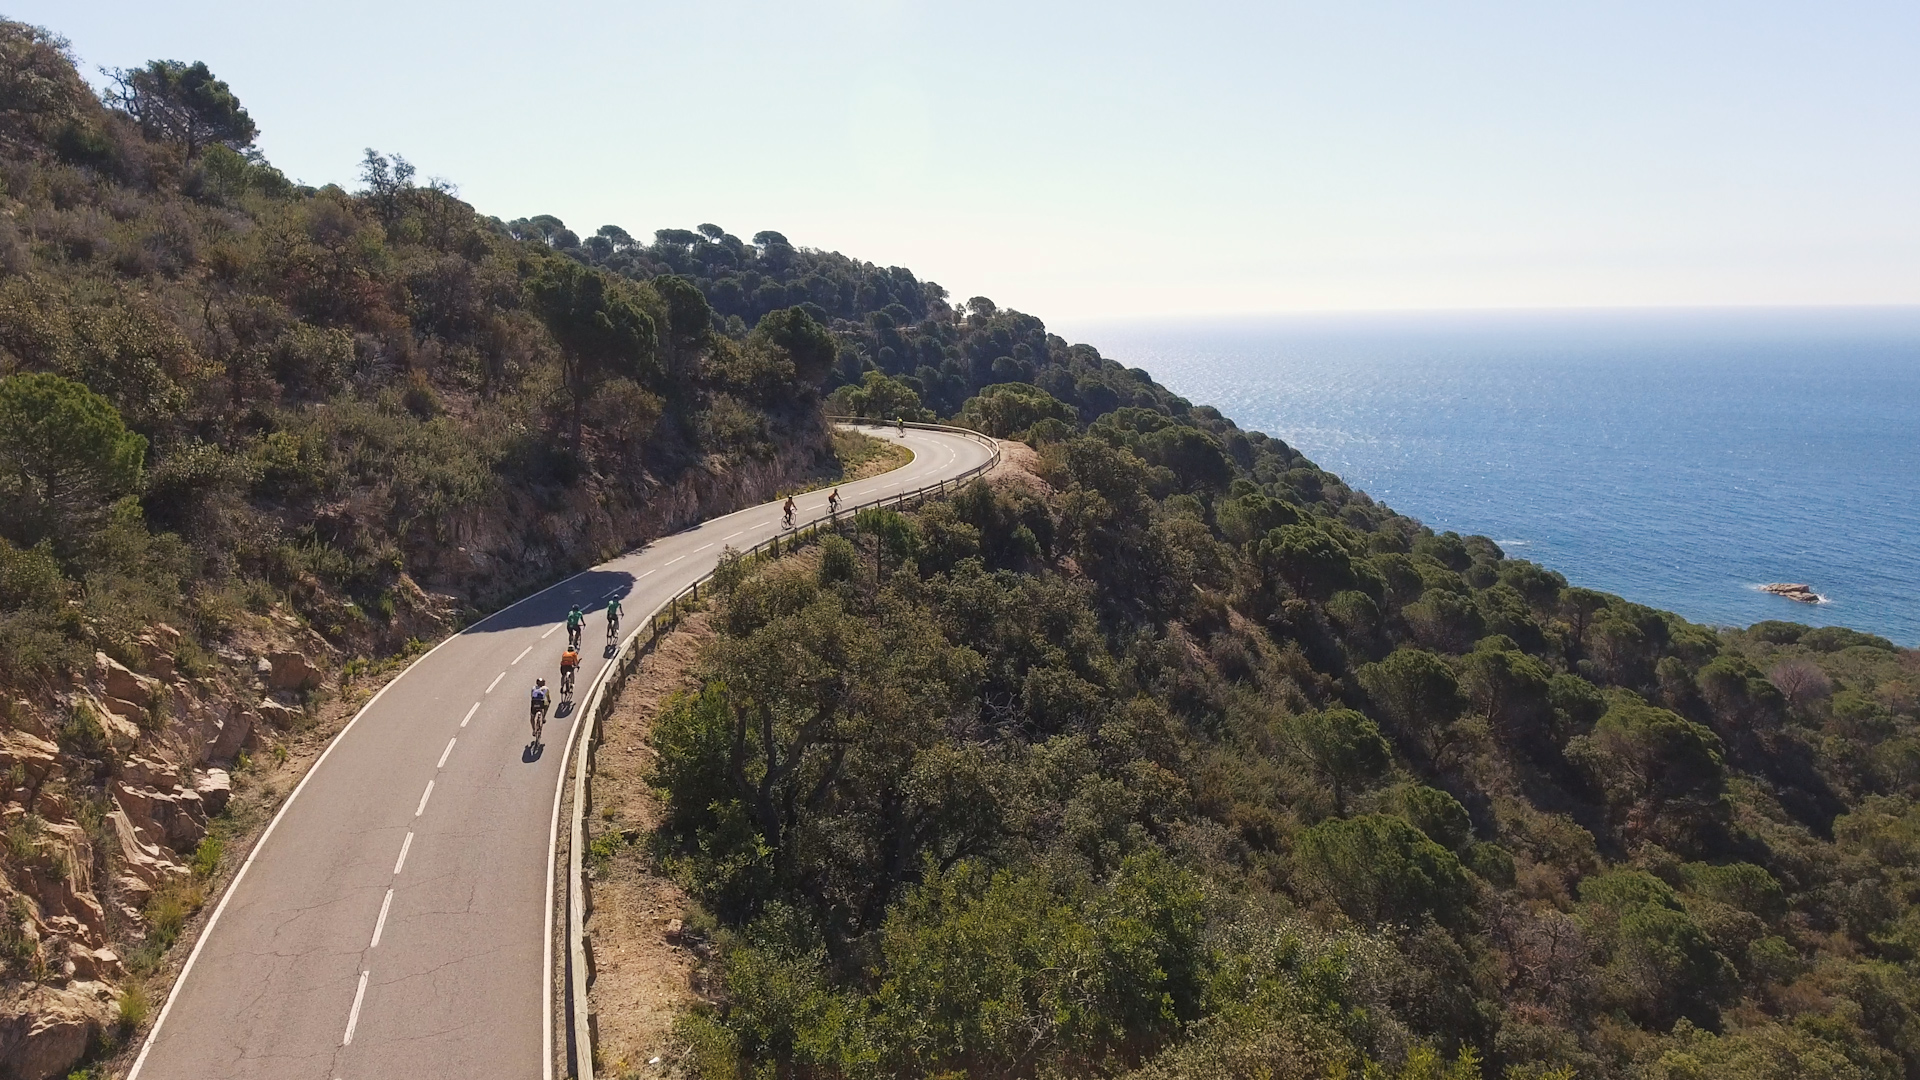 The Ciclobrava 2020 presents the routes with the finest roads for cycle touring